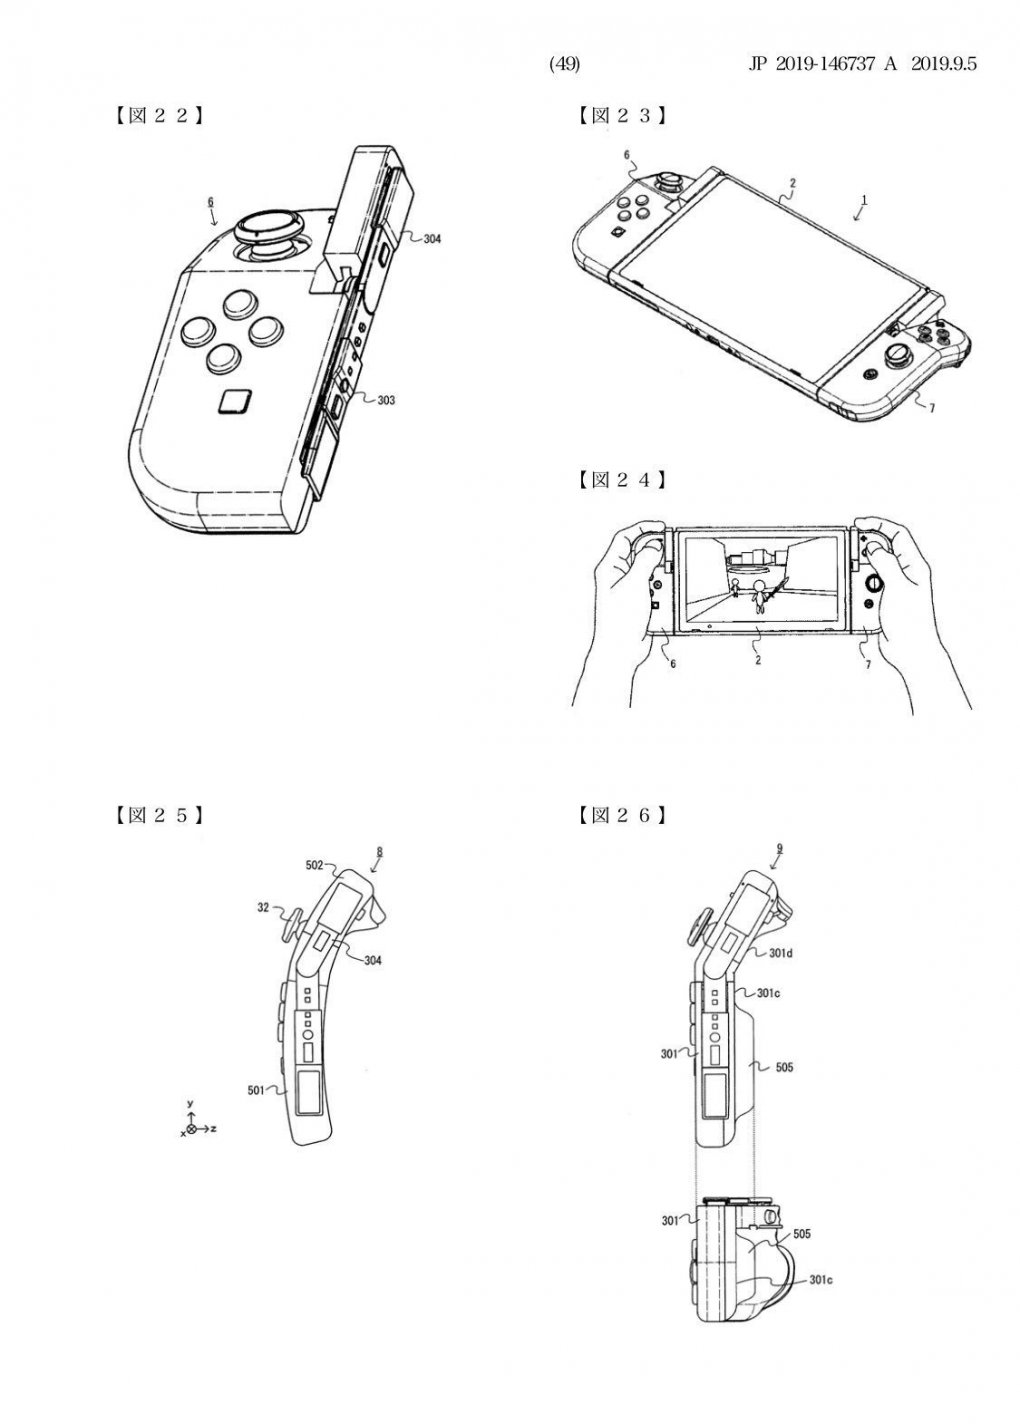 Nintendo Switch: Neues Patent zeigt klappbare Joy-Cons